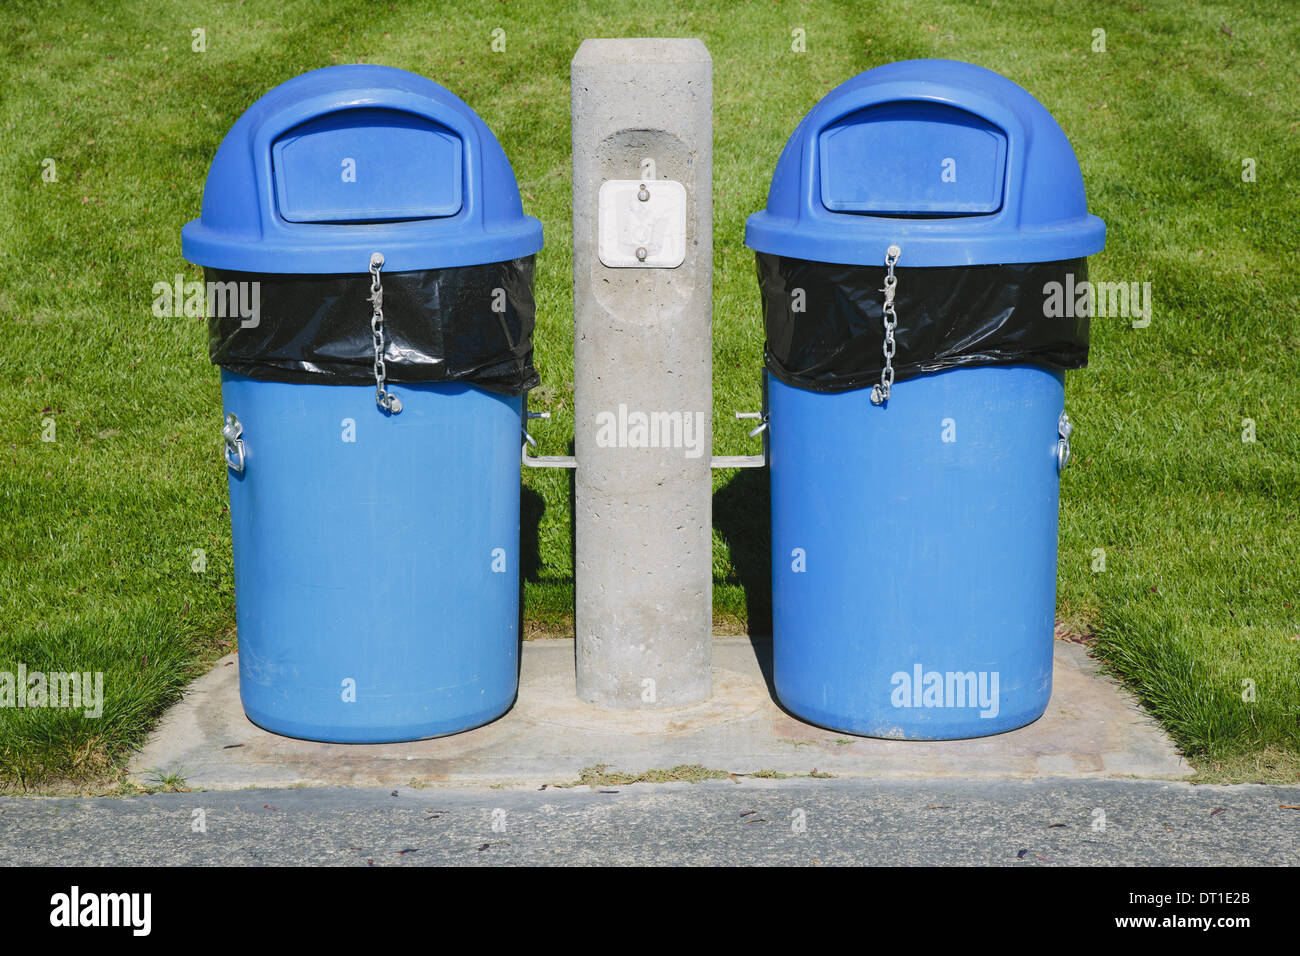 Washington State USA Blue trash cans on grass sports field - Stock Image